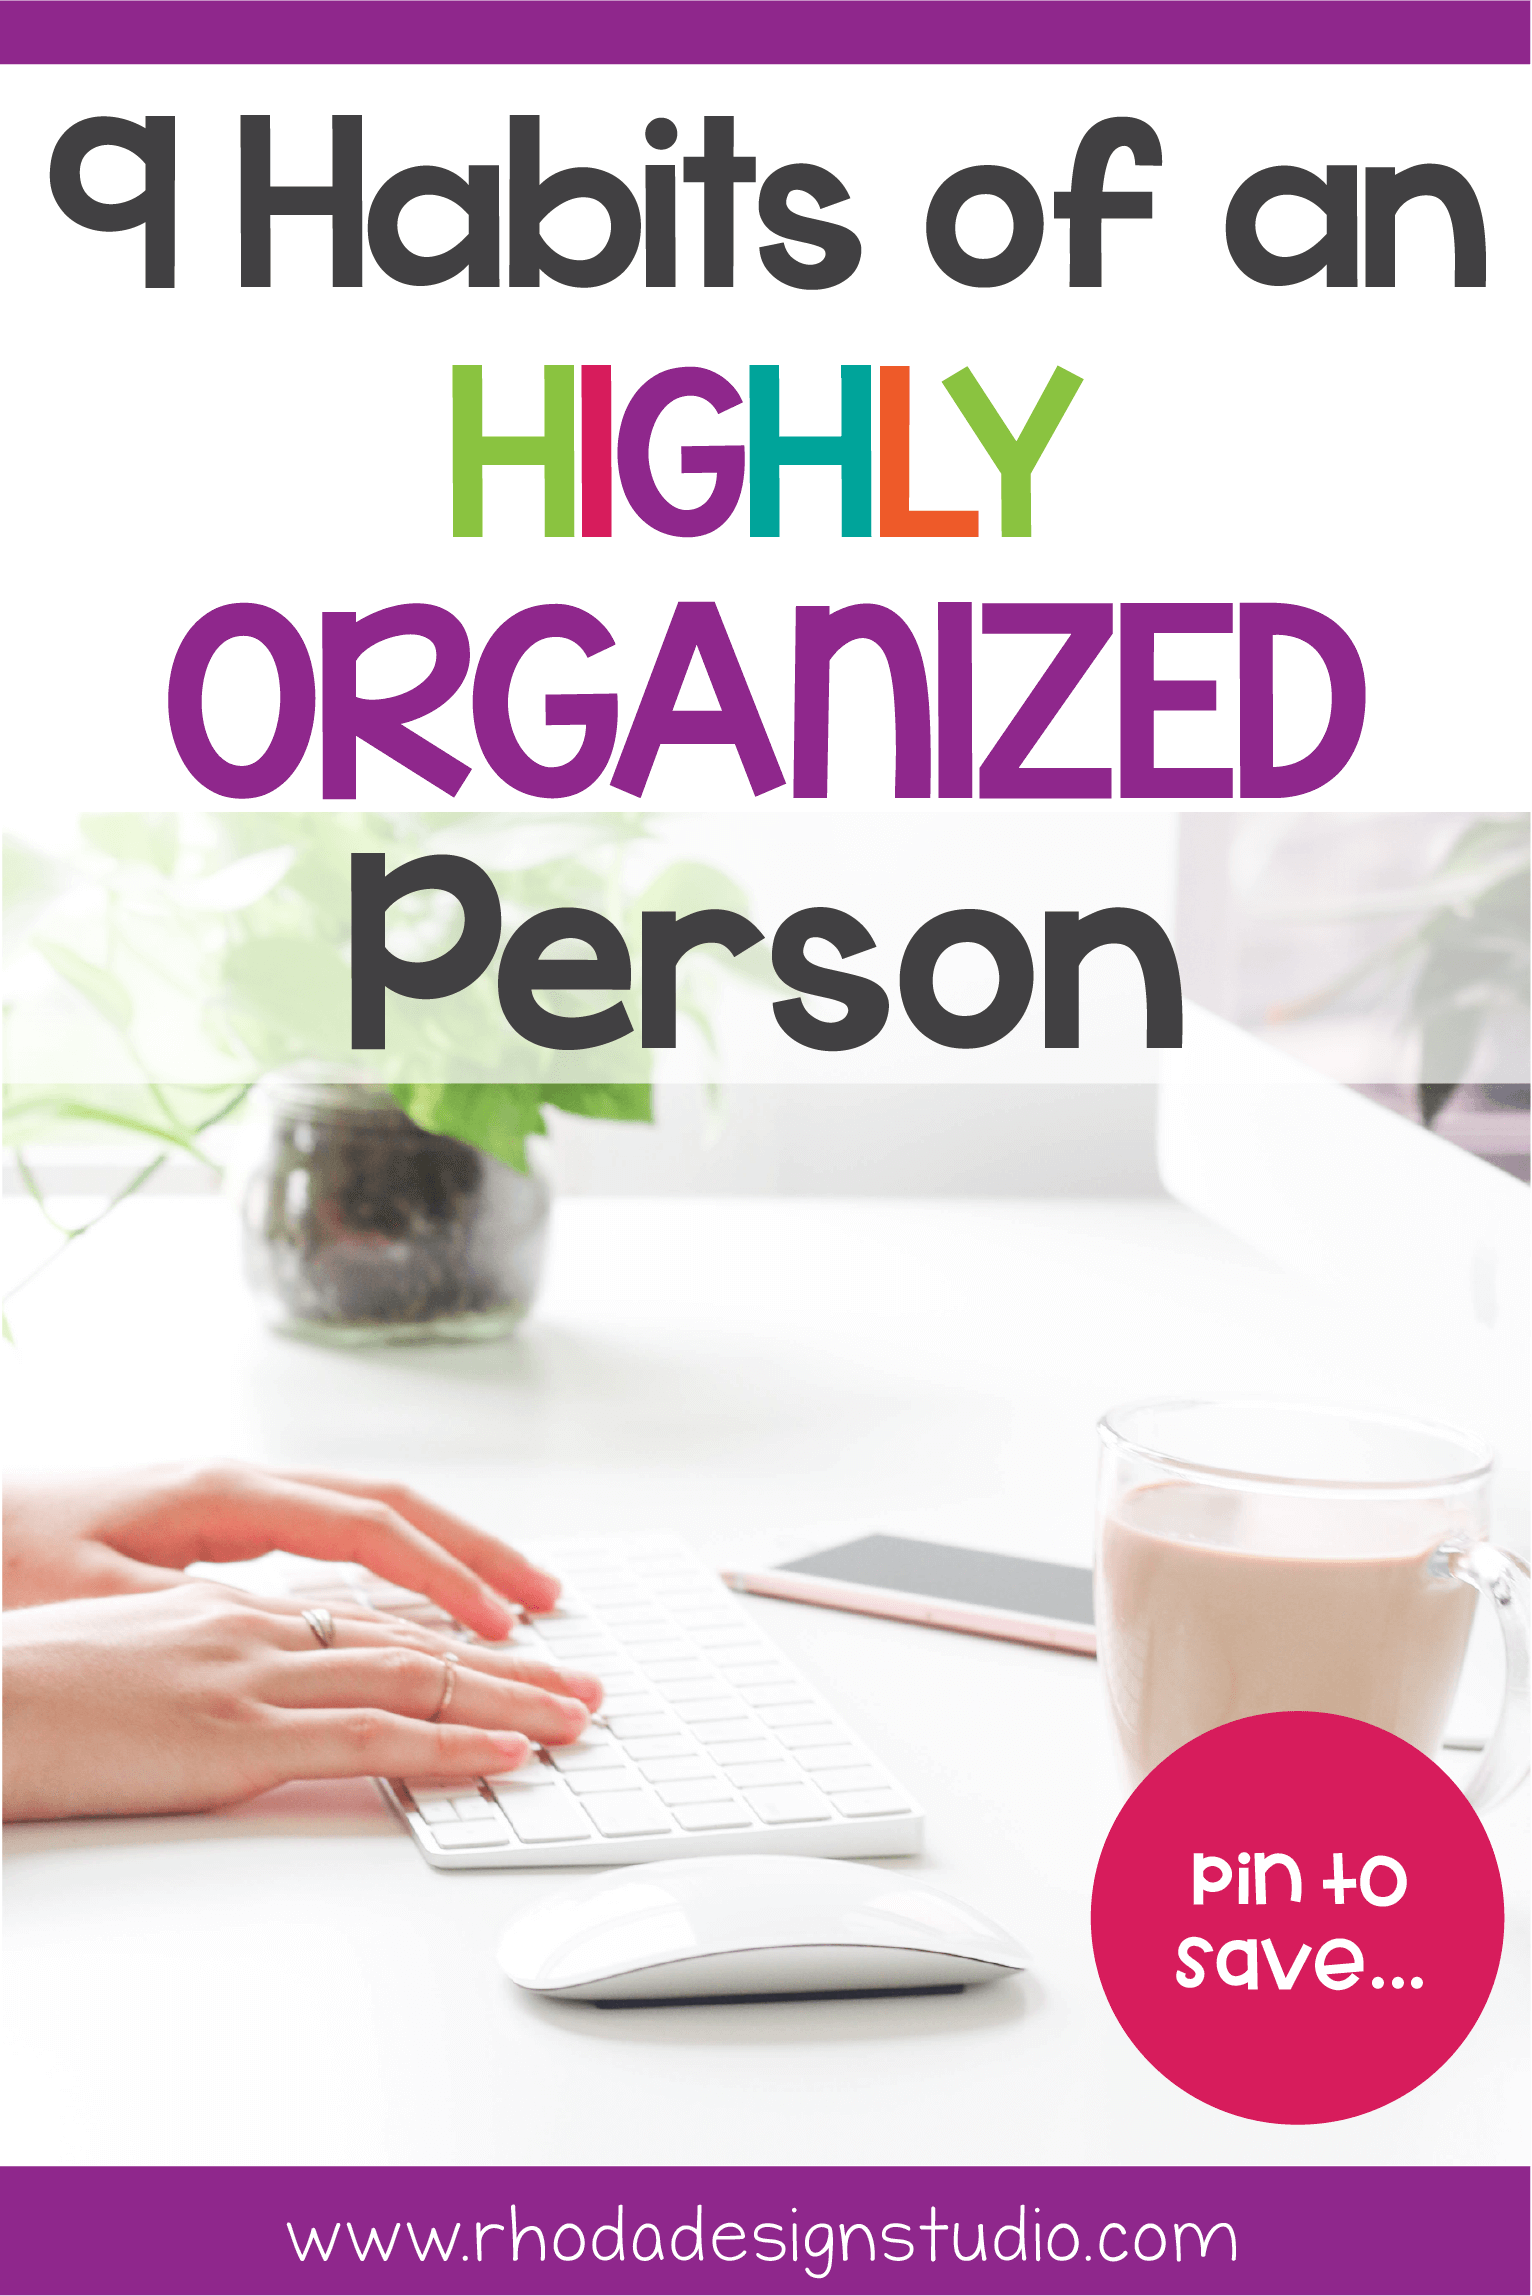 What are some of the habits that organized people have? These 9 tips will show you how to have better time management, organize your life and home, and start building an organized schedule and routine. 9 habits of highly organized people do. Learn to be an organized person and more productive. How many habits of organized people do you already do? #rhodadesignstudio